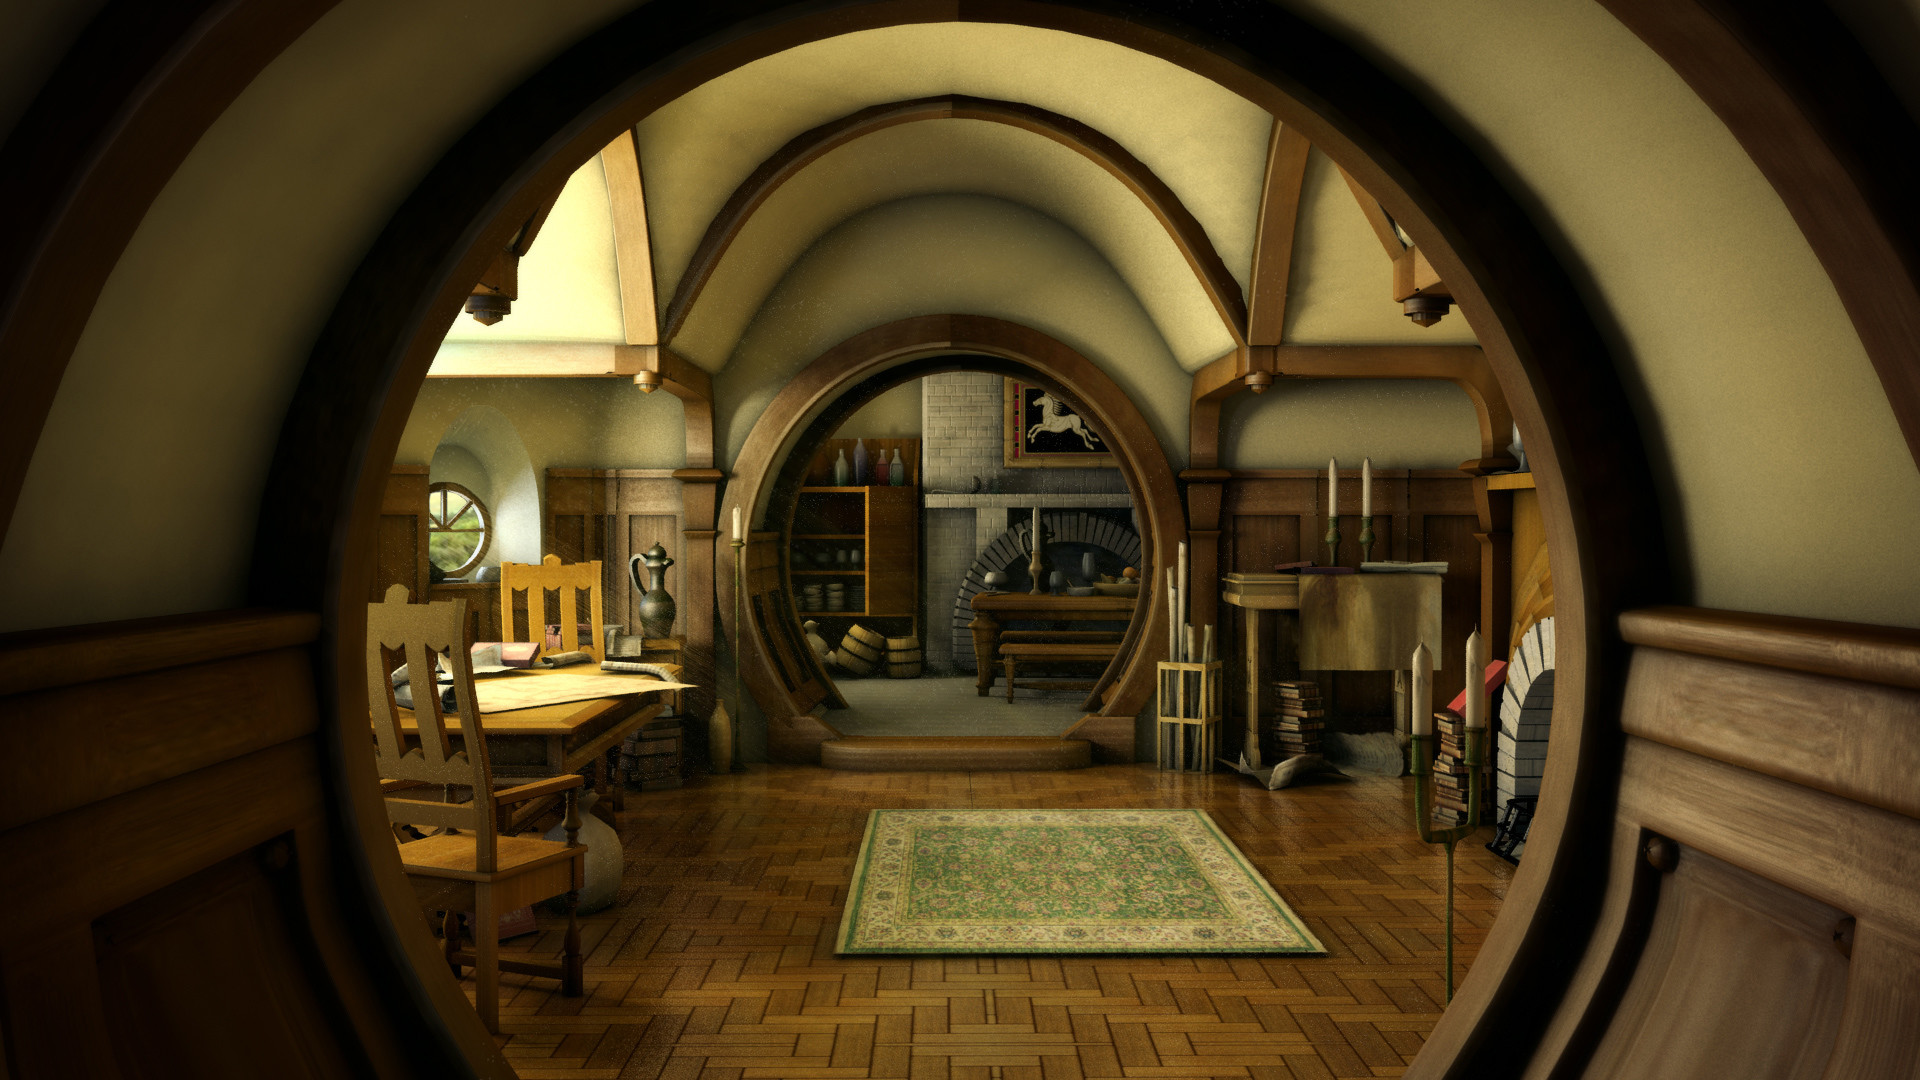 The Hobbit lord rings lotr architecture house room building fantasy  interior design wallpaper     31018   WallpaperUP